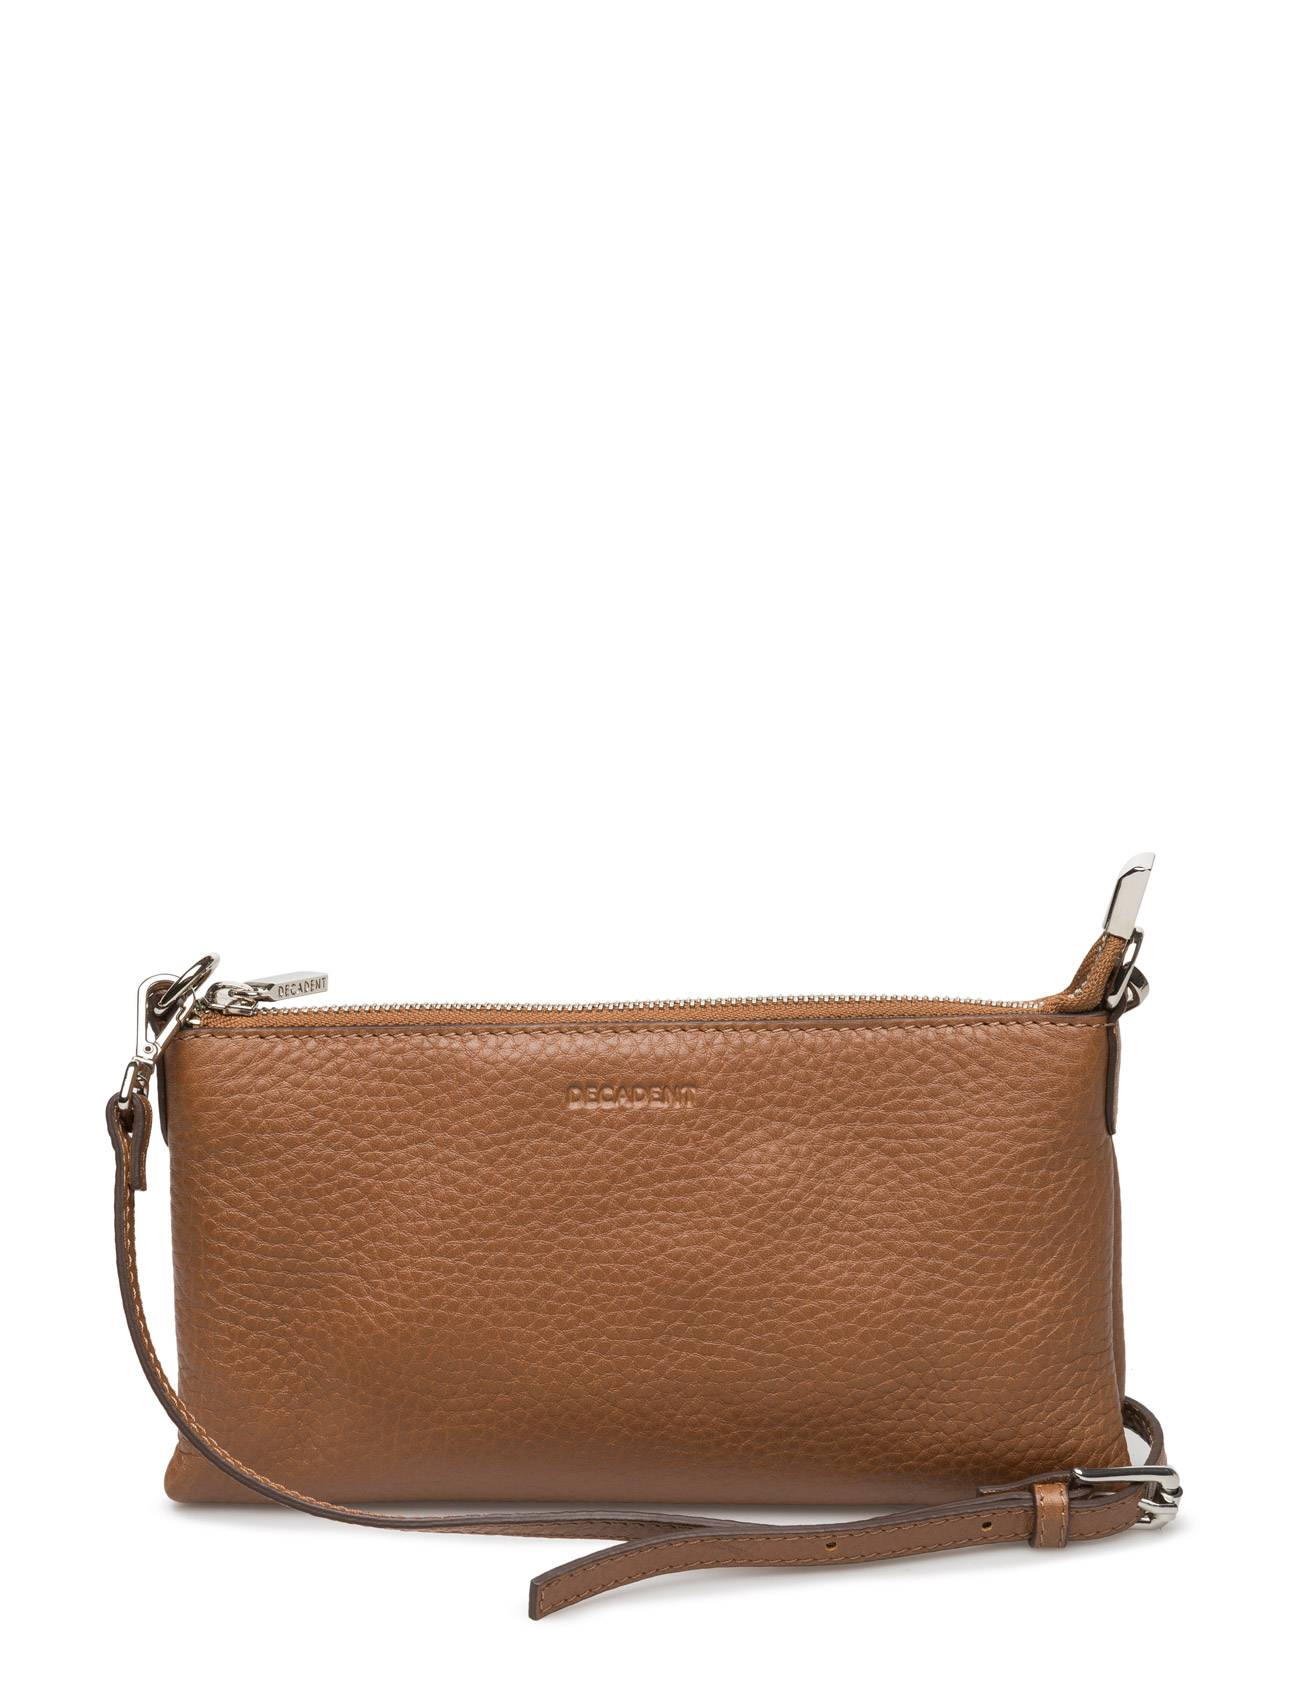 Decadent Mini Flat Cross Body